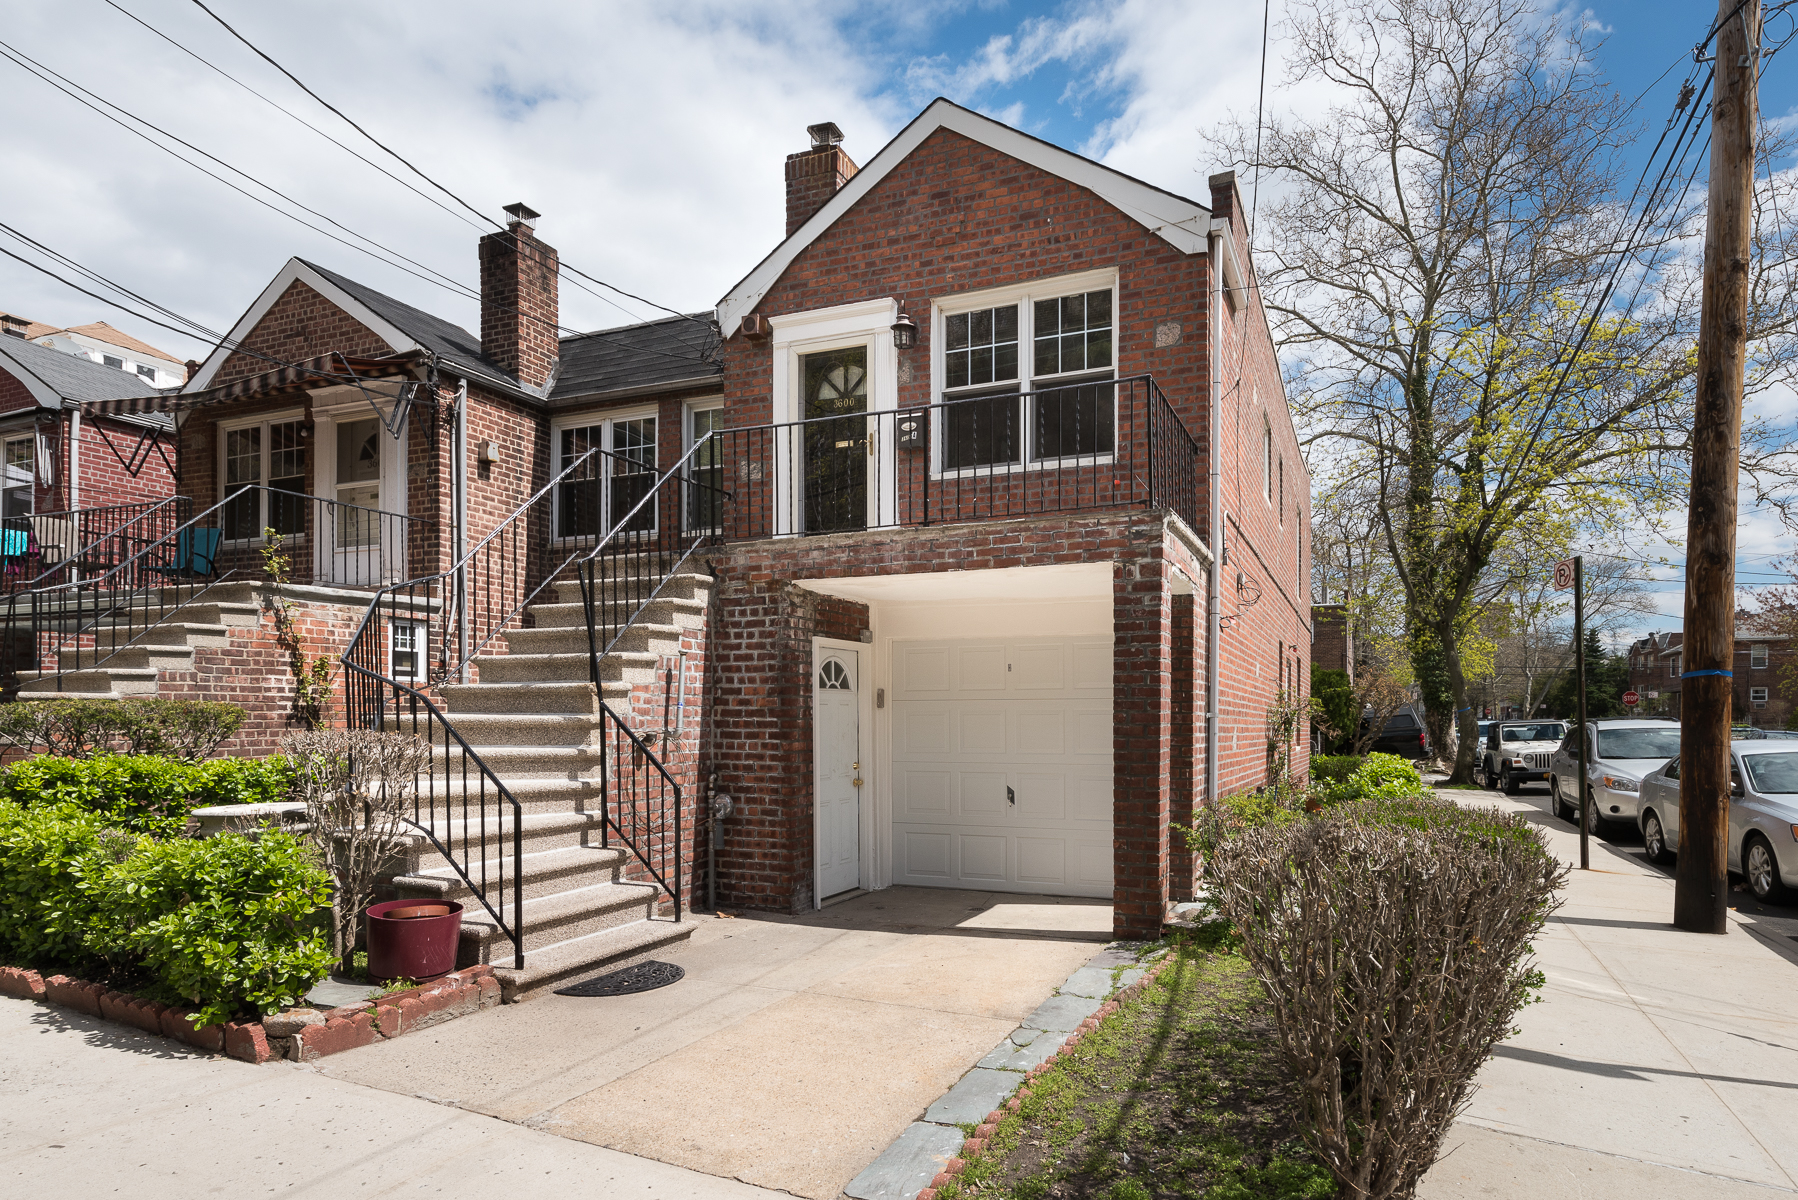 Multi-Family Home for Sale at 2-Family Corner Brick House 3600 Irwin Avenue Kingsbridge, Bronx, New York 10463 United States